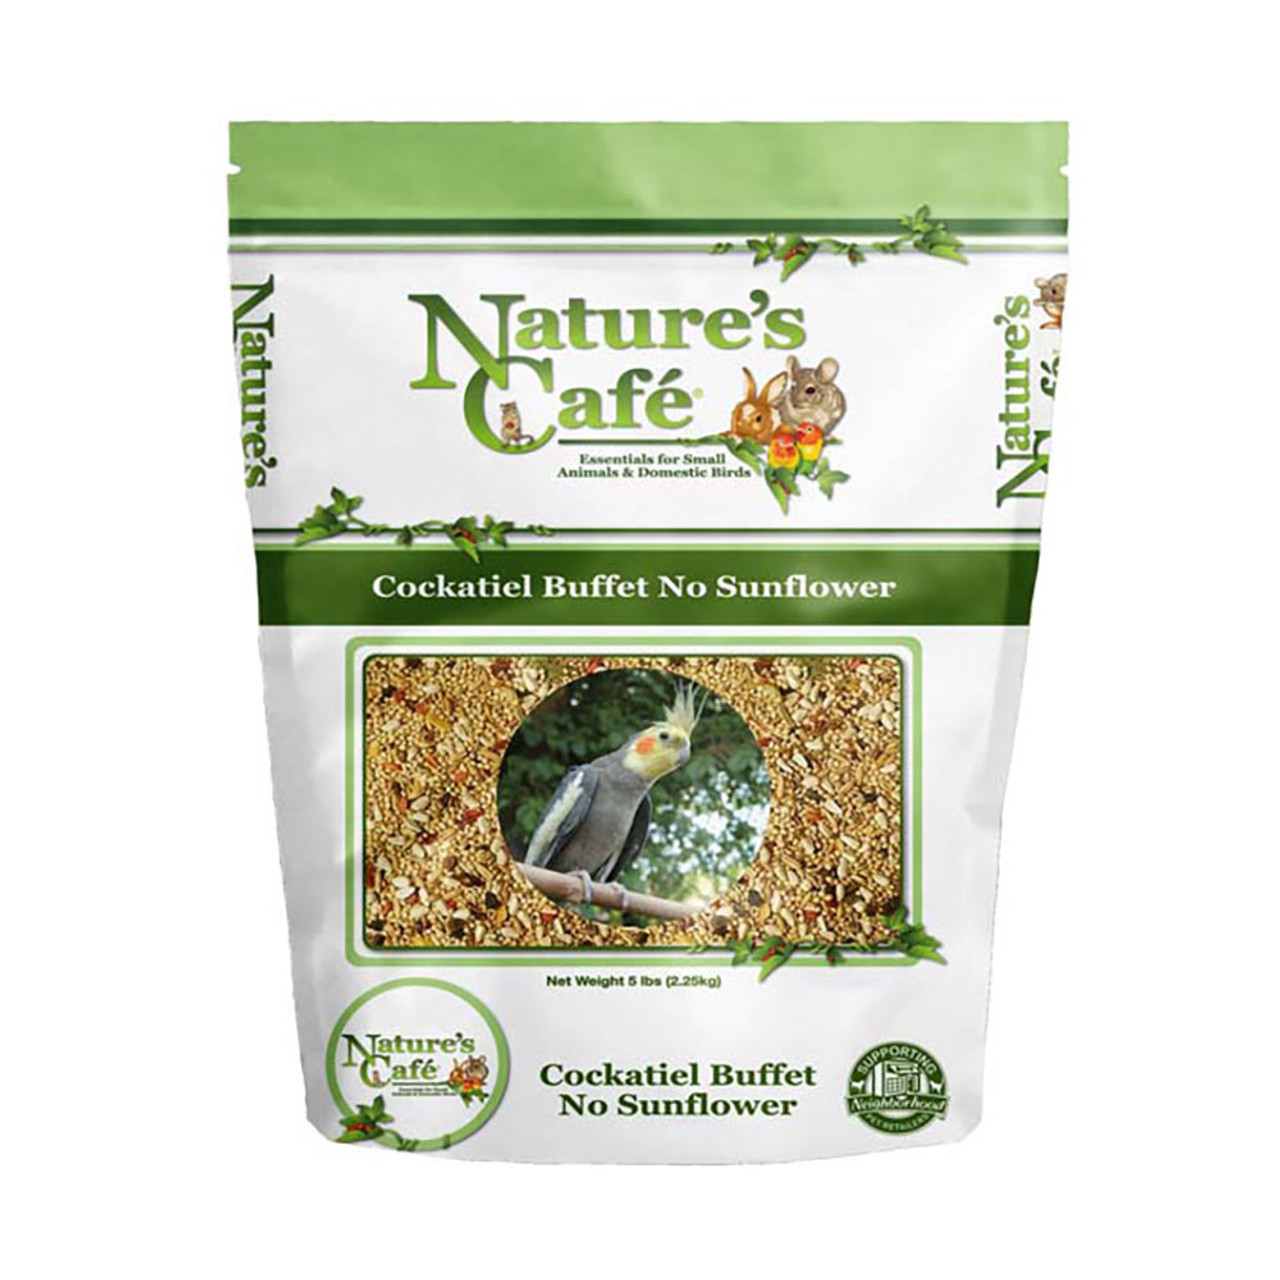 Nature's Cafe Cockatiel Buffet with No Sunflowers Bird Food